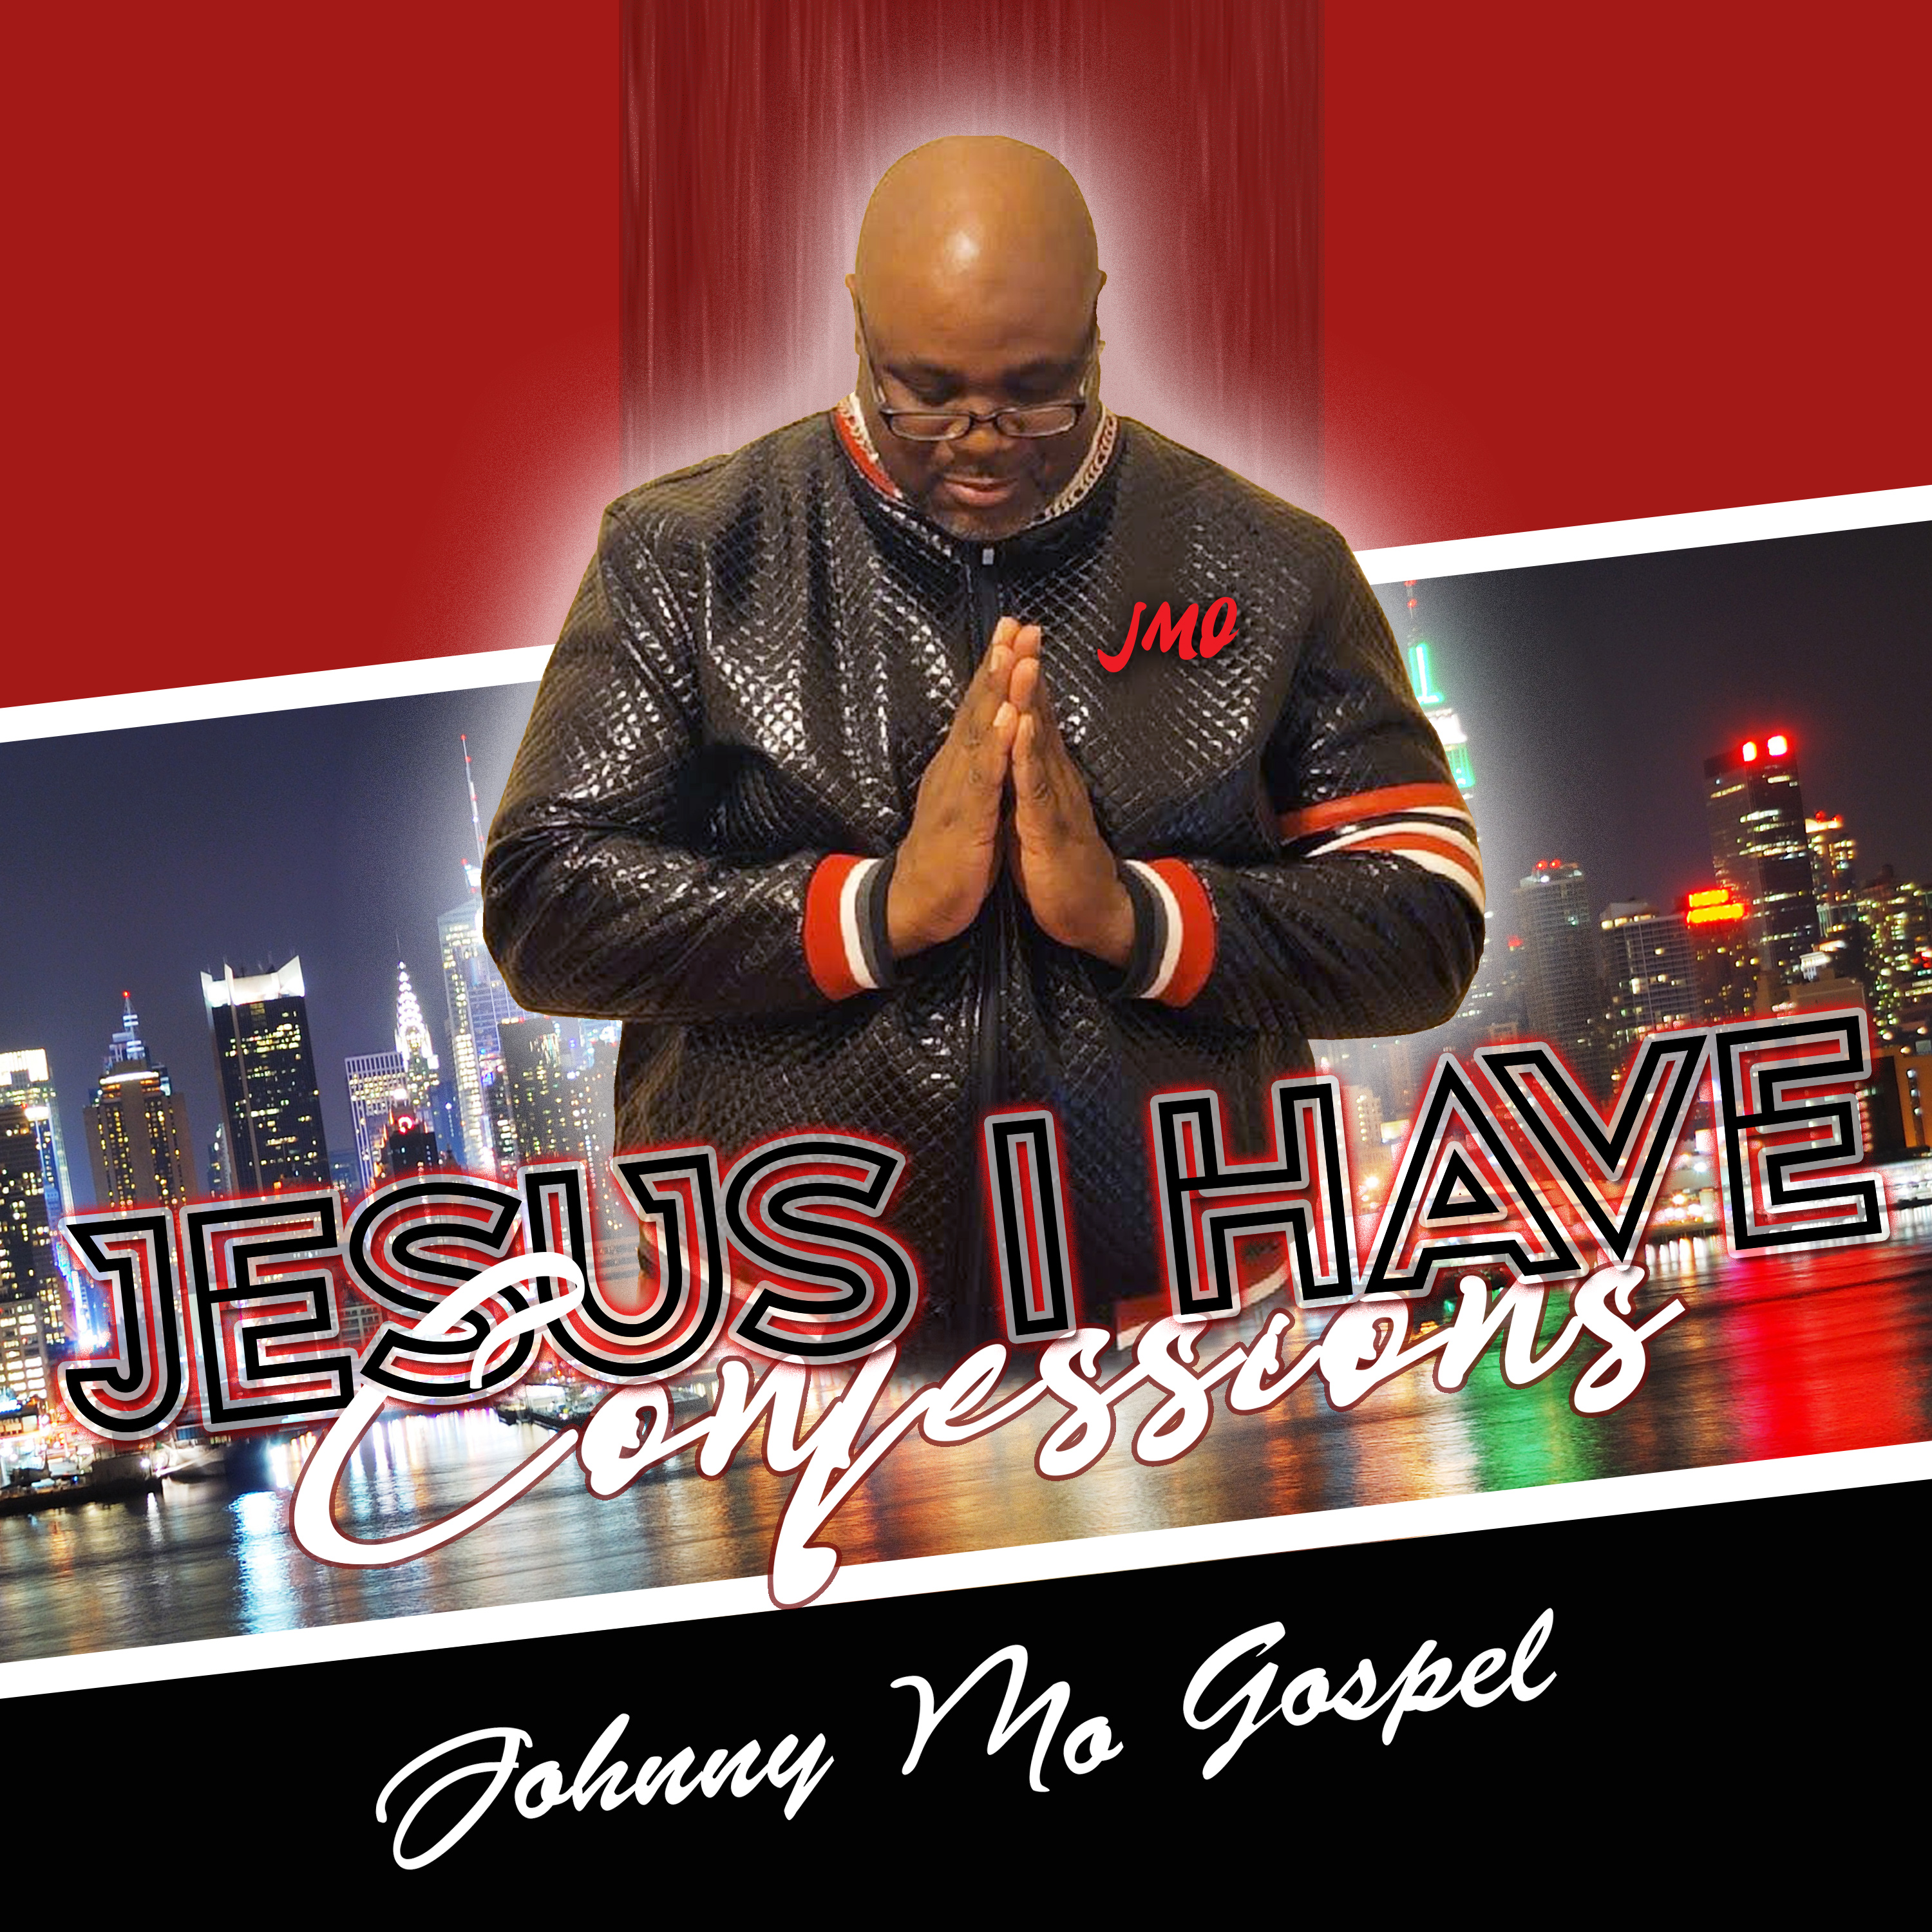 """Asking For Forgiveness And Redemption On The Path To Improving His Relationship With God: Johnny Mo Gospel Releases New 14 Song Digital Gospel/Christian CD Project """"Jesus I Have Confessions"""""""